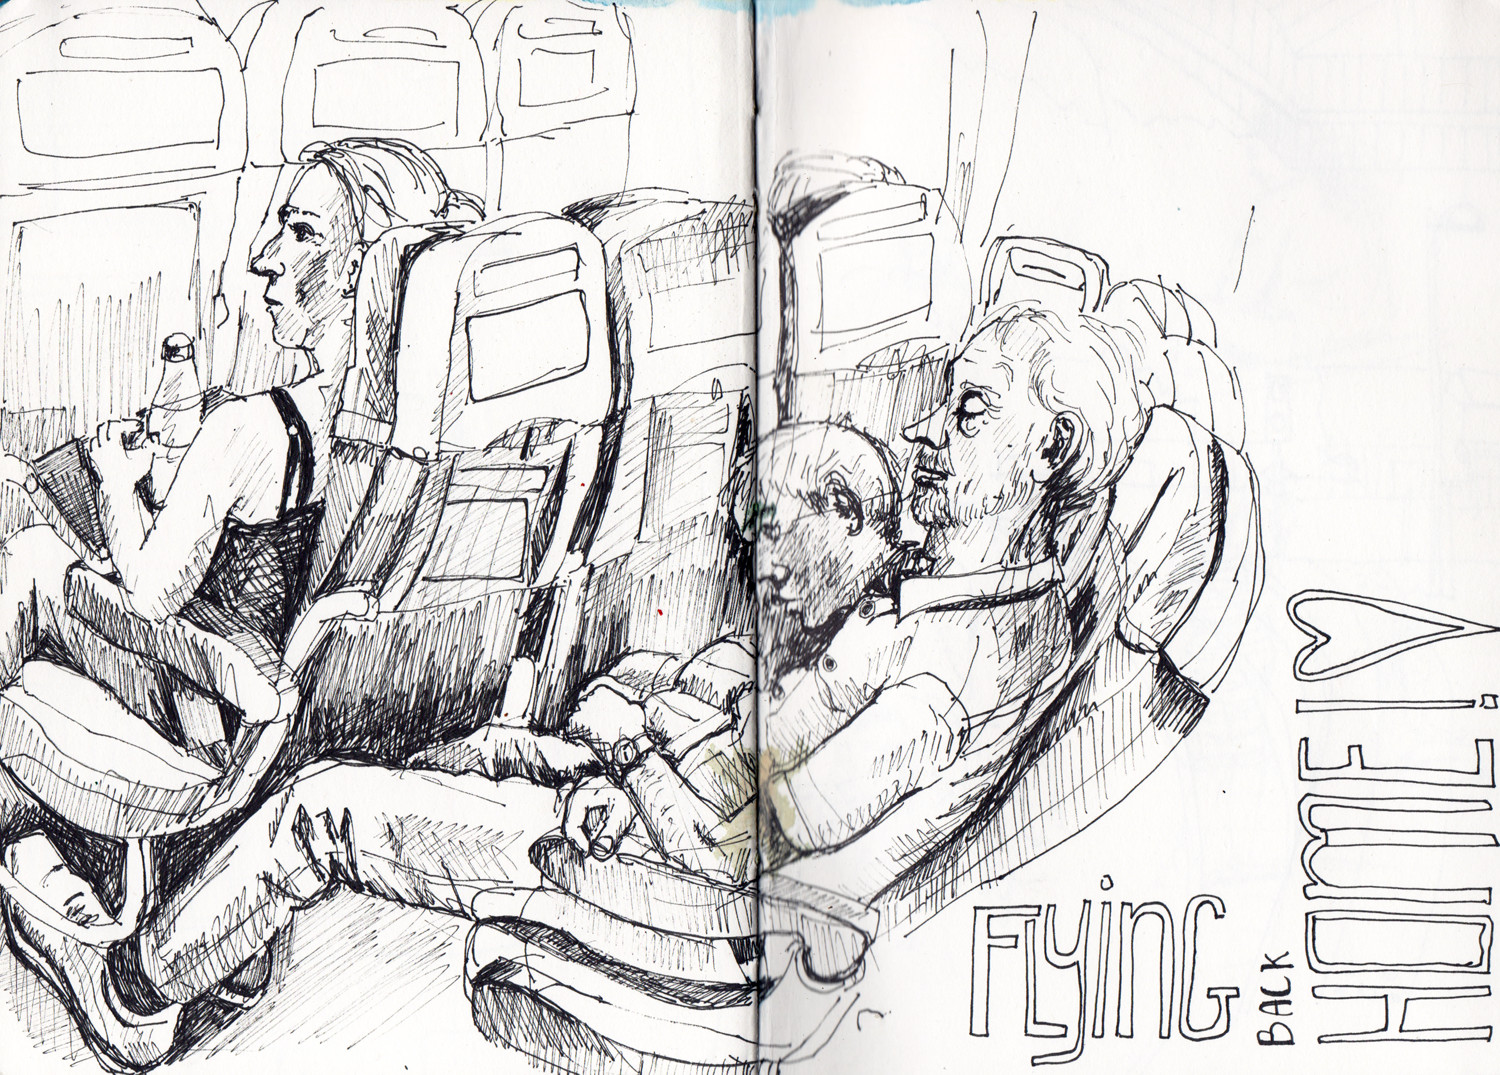 Plane sketch in pen